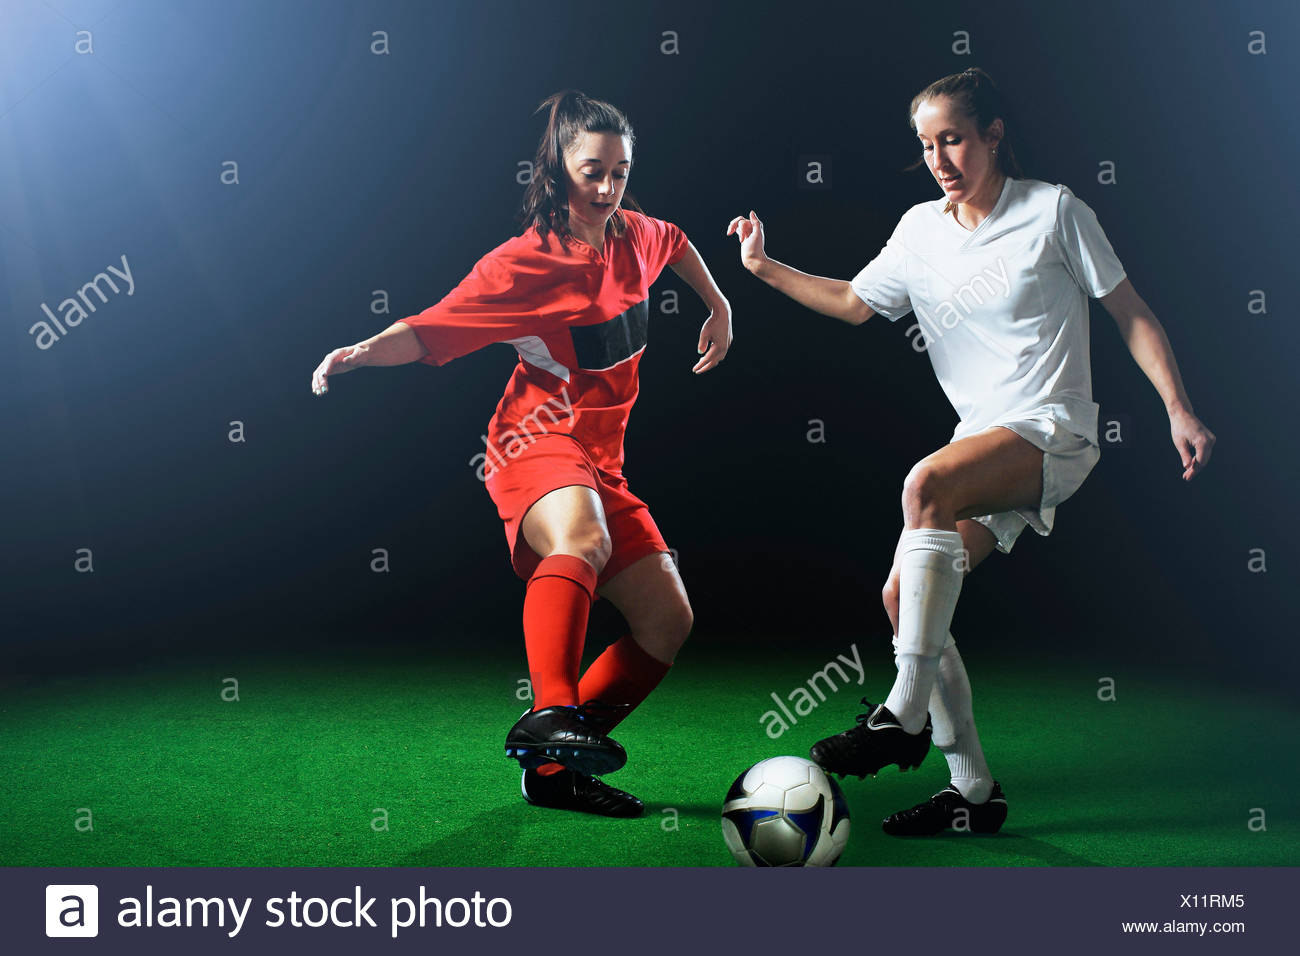 Two female soccer players tackling ball Stock Photo